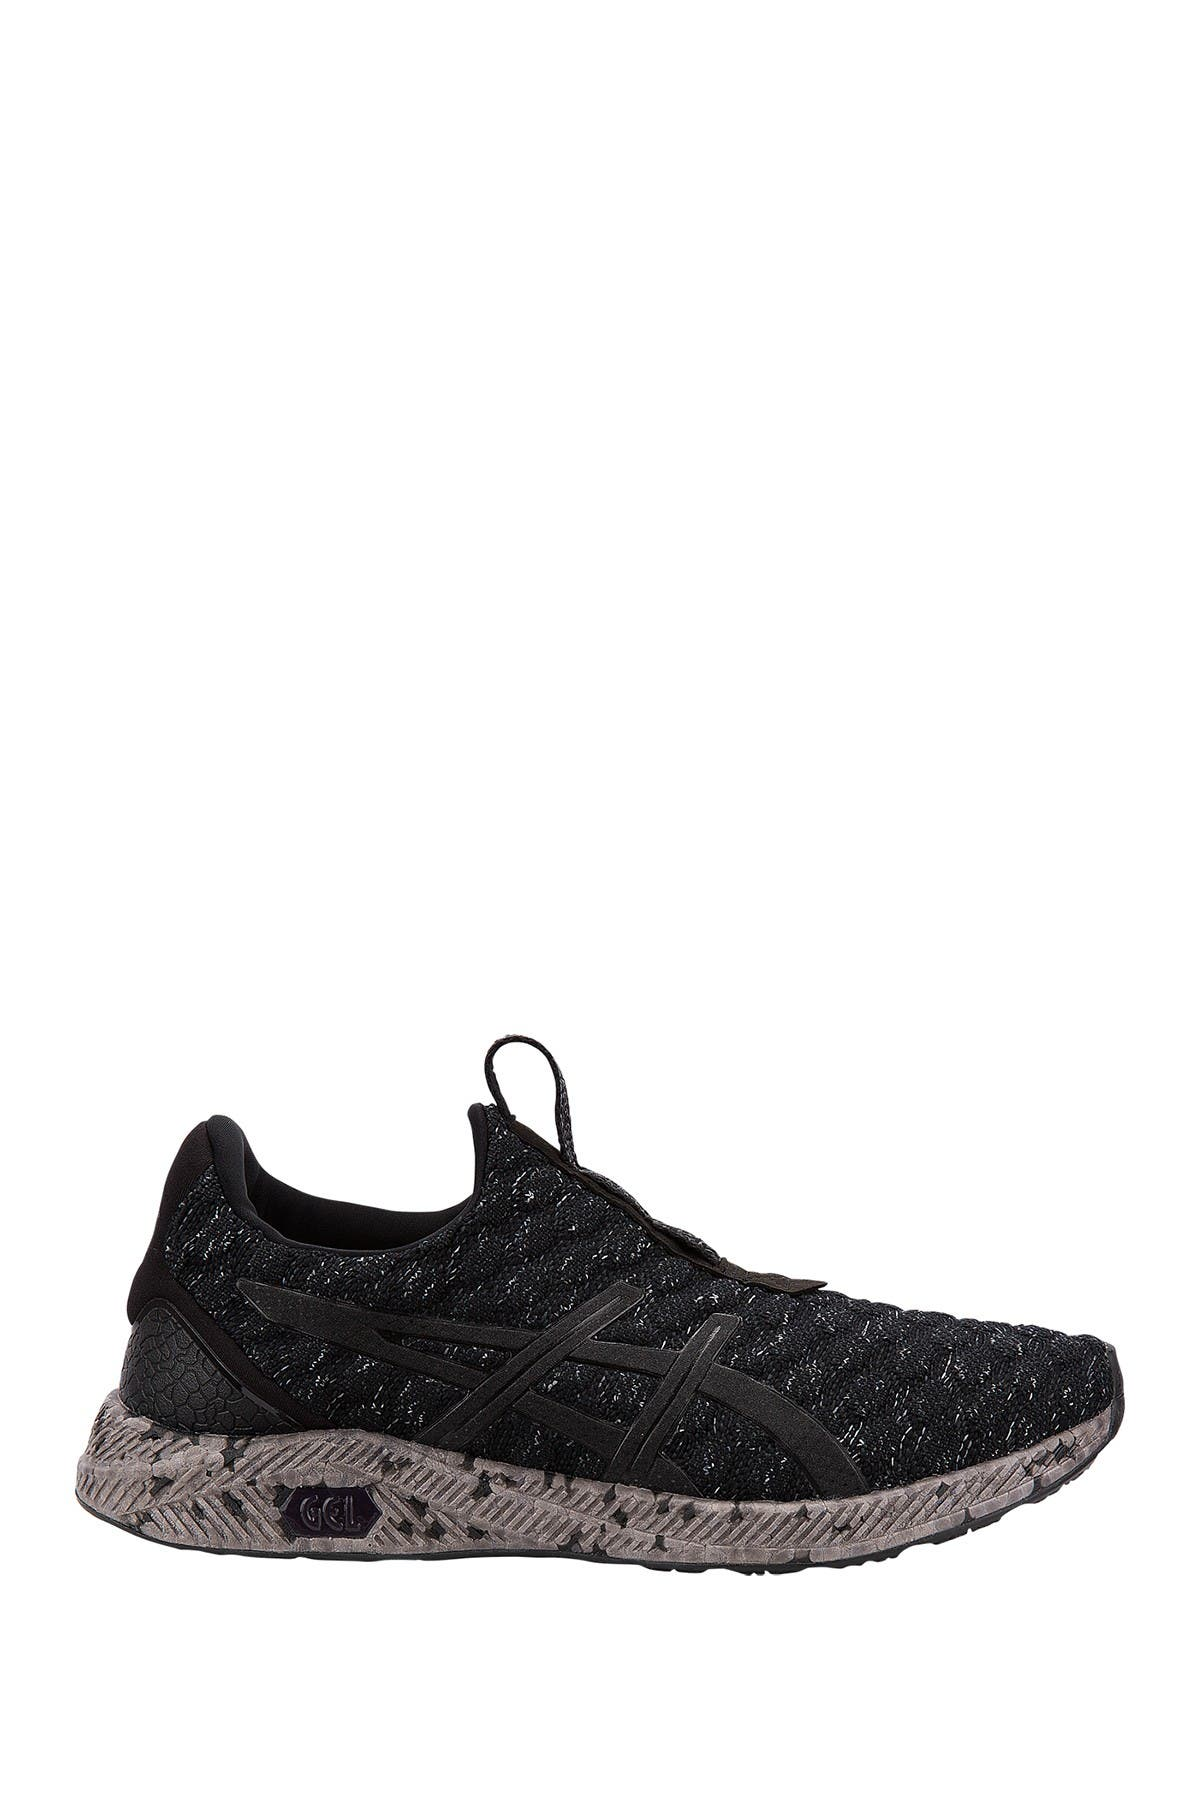 Image of ASICS Hypergel Kenzen Slip On Running Sneaker